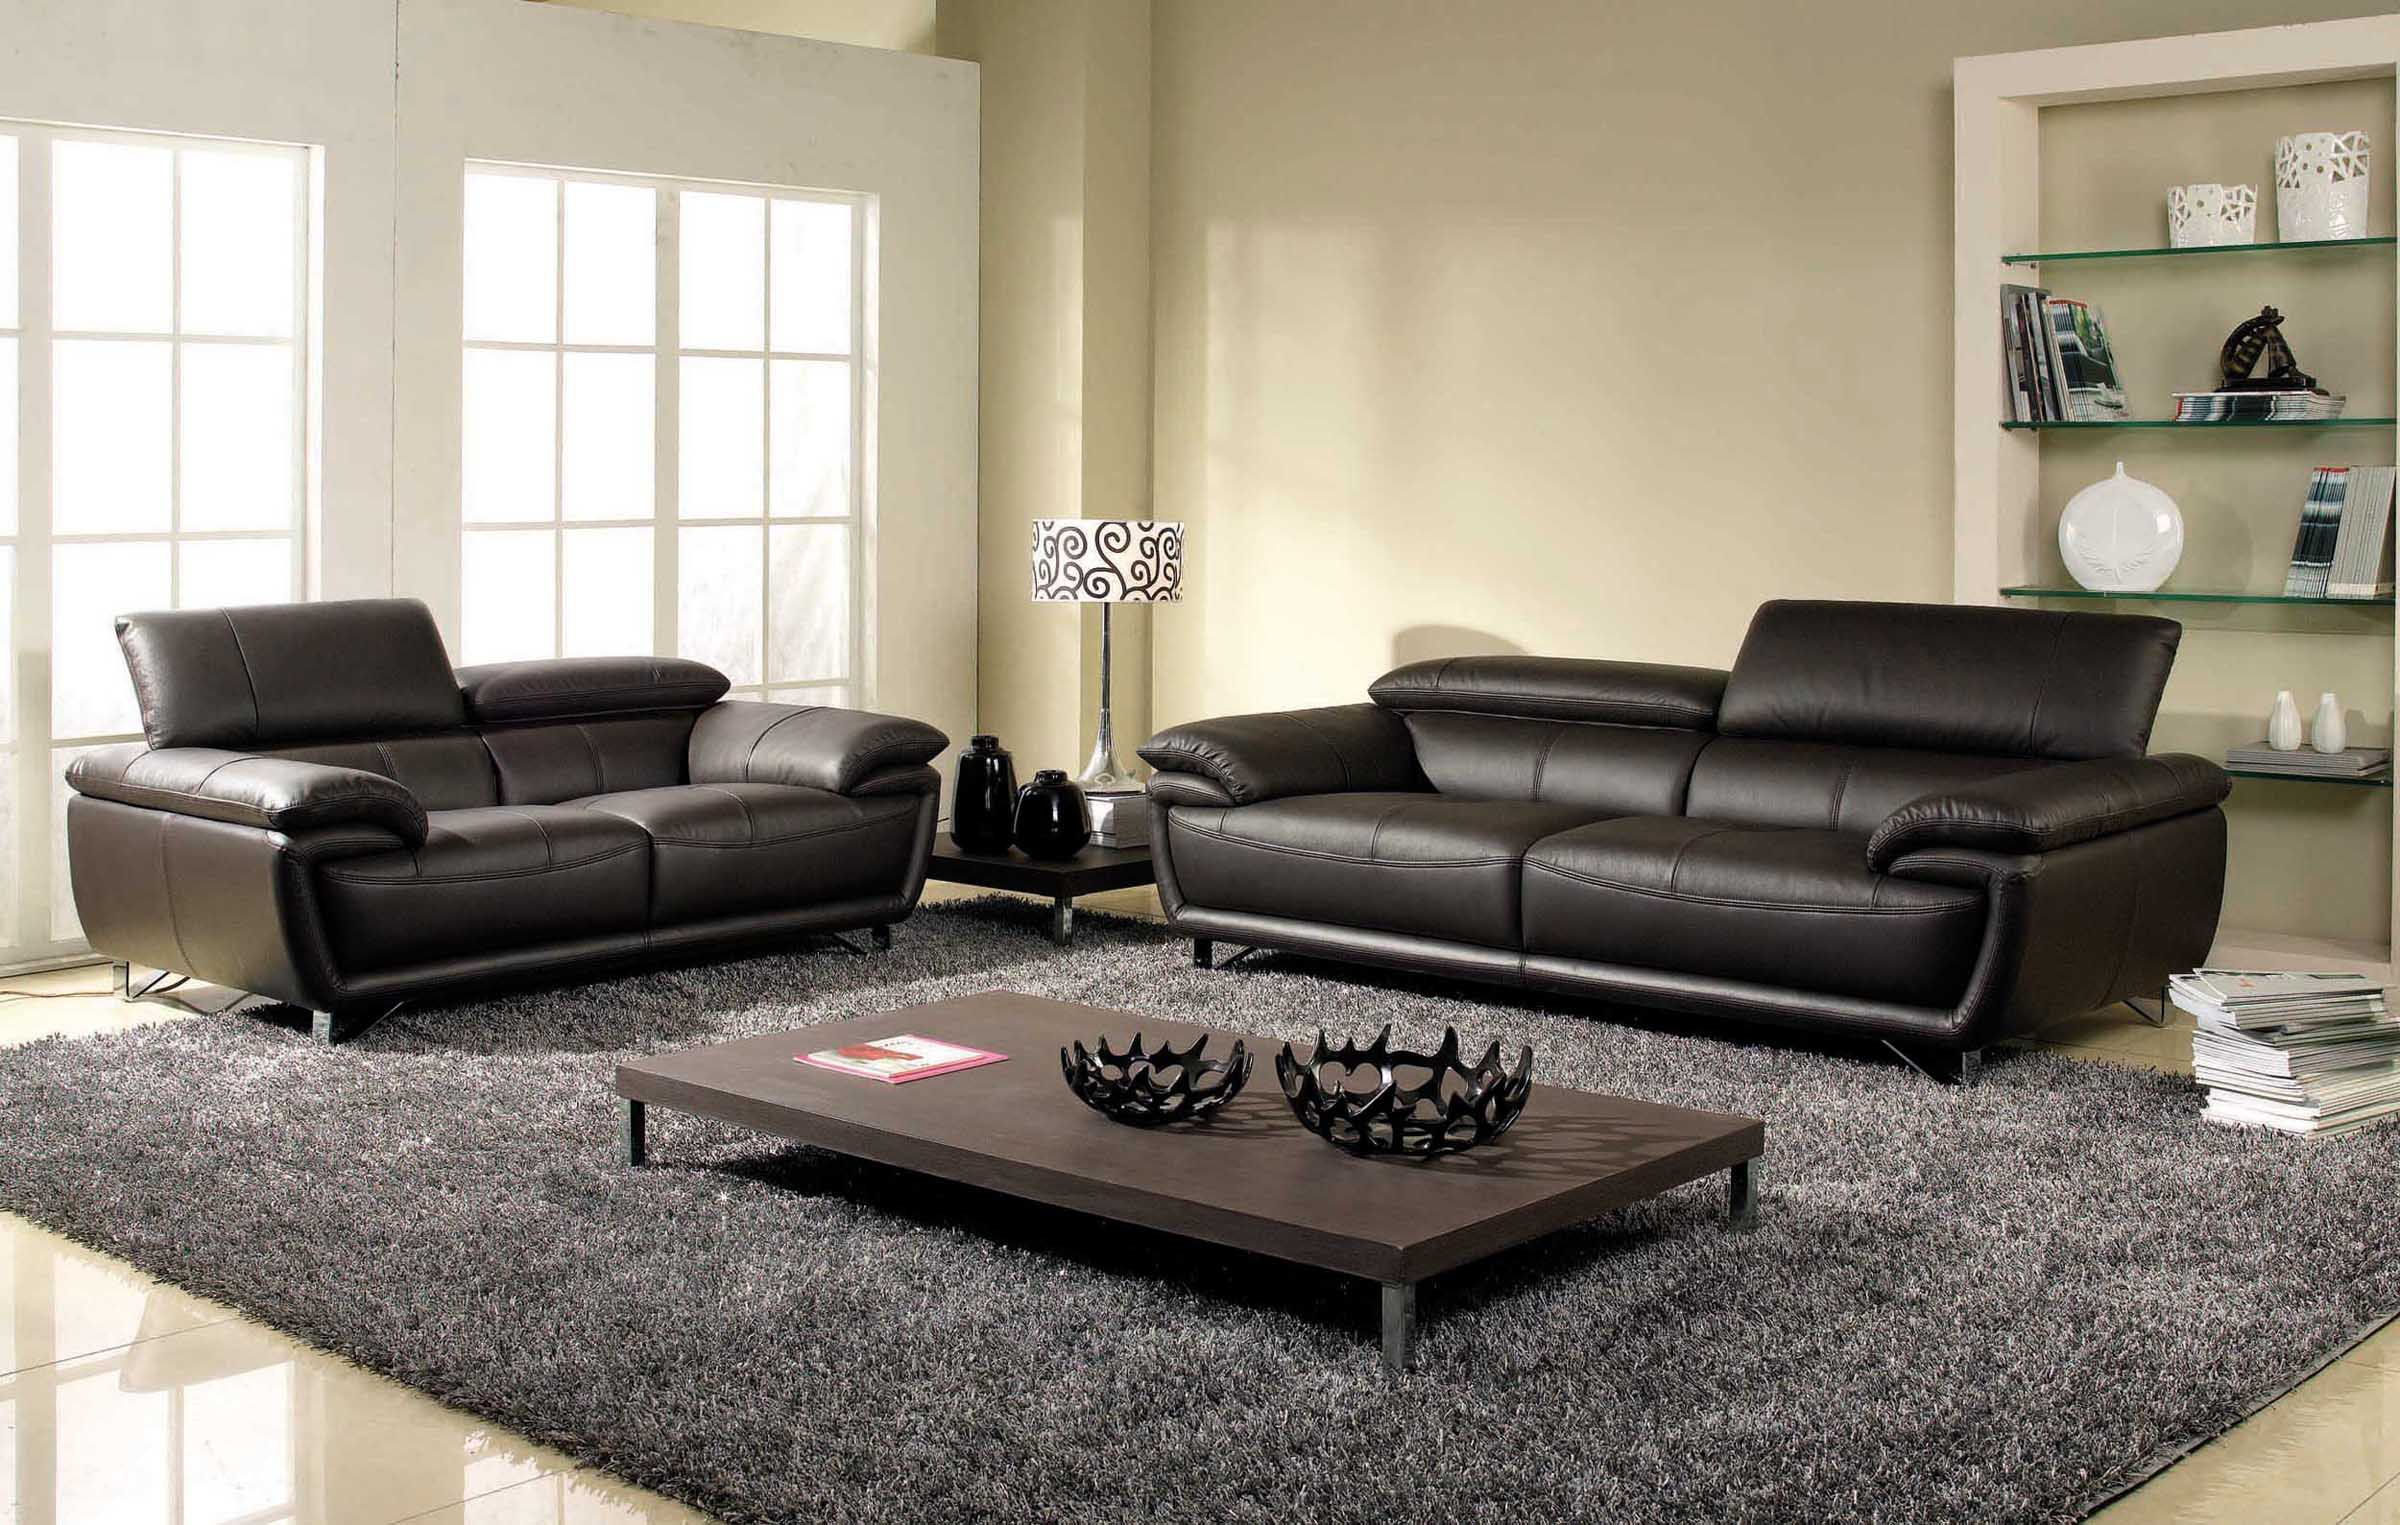 Sofa New Style shenzhen ouluo furniture co., ltd.